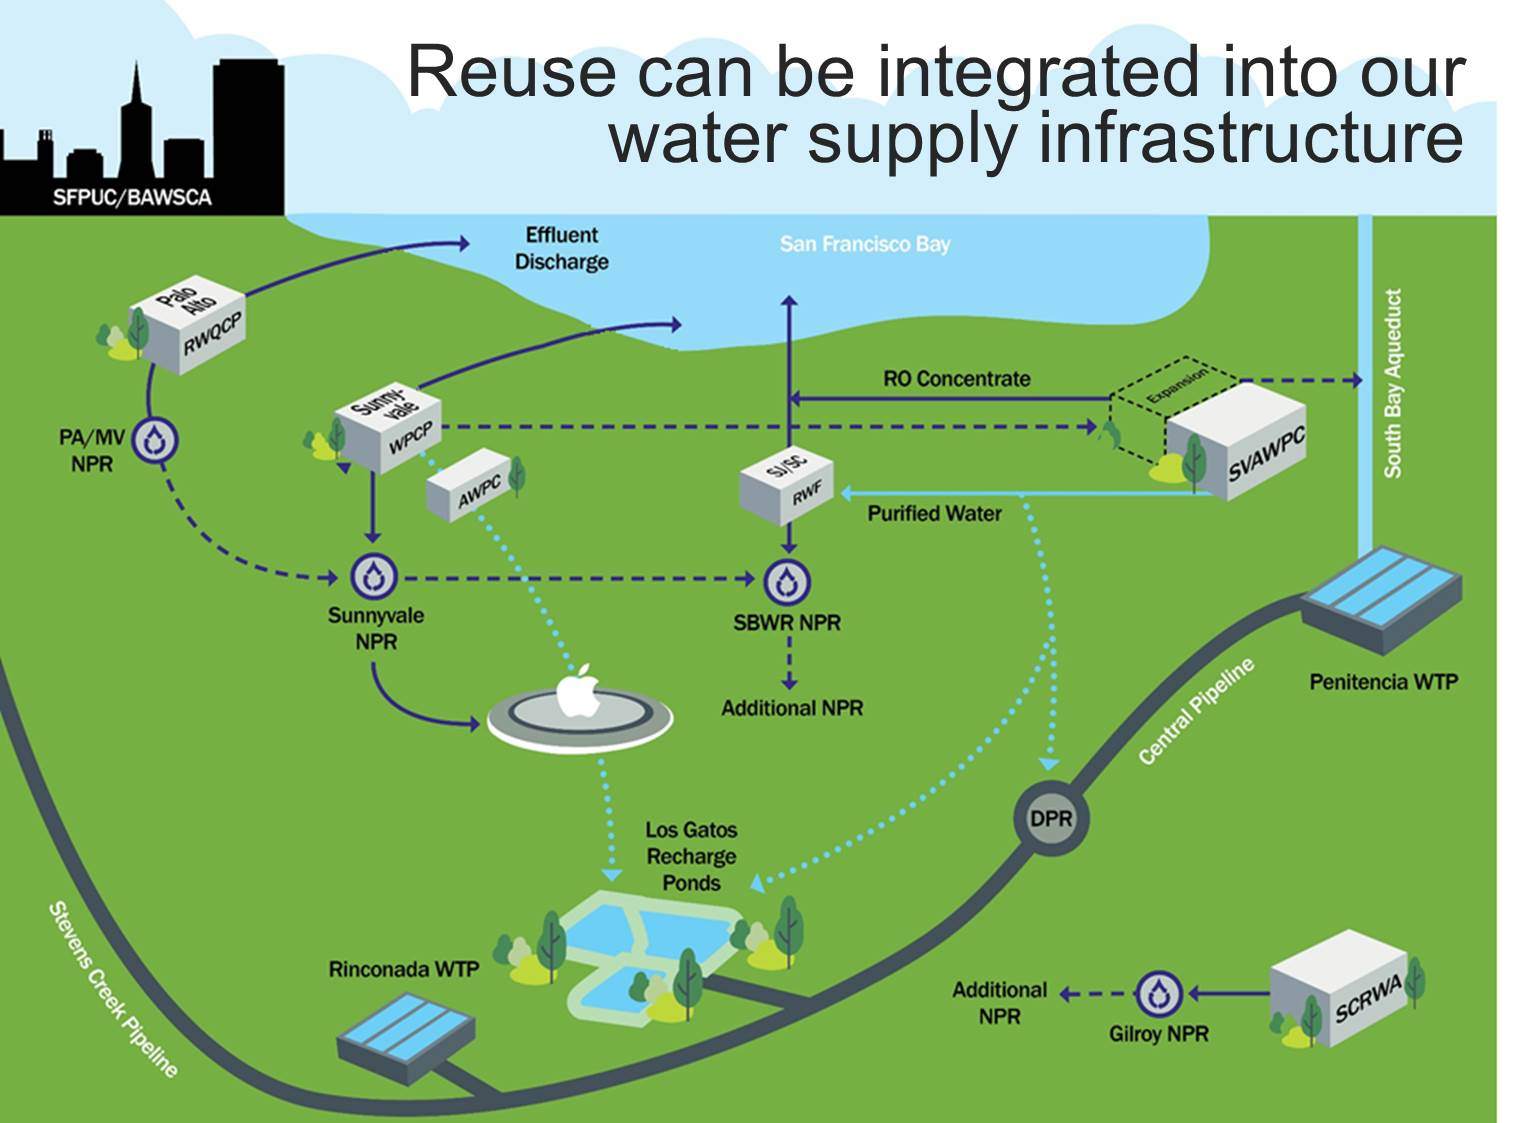 Diagram of potential water reuse network